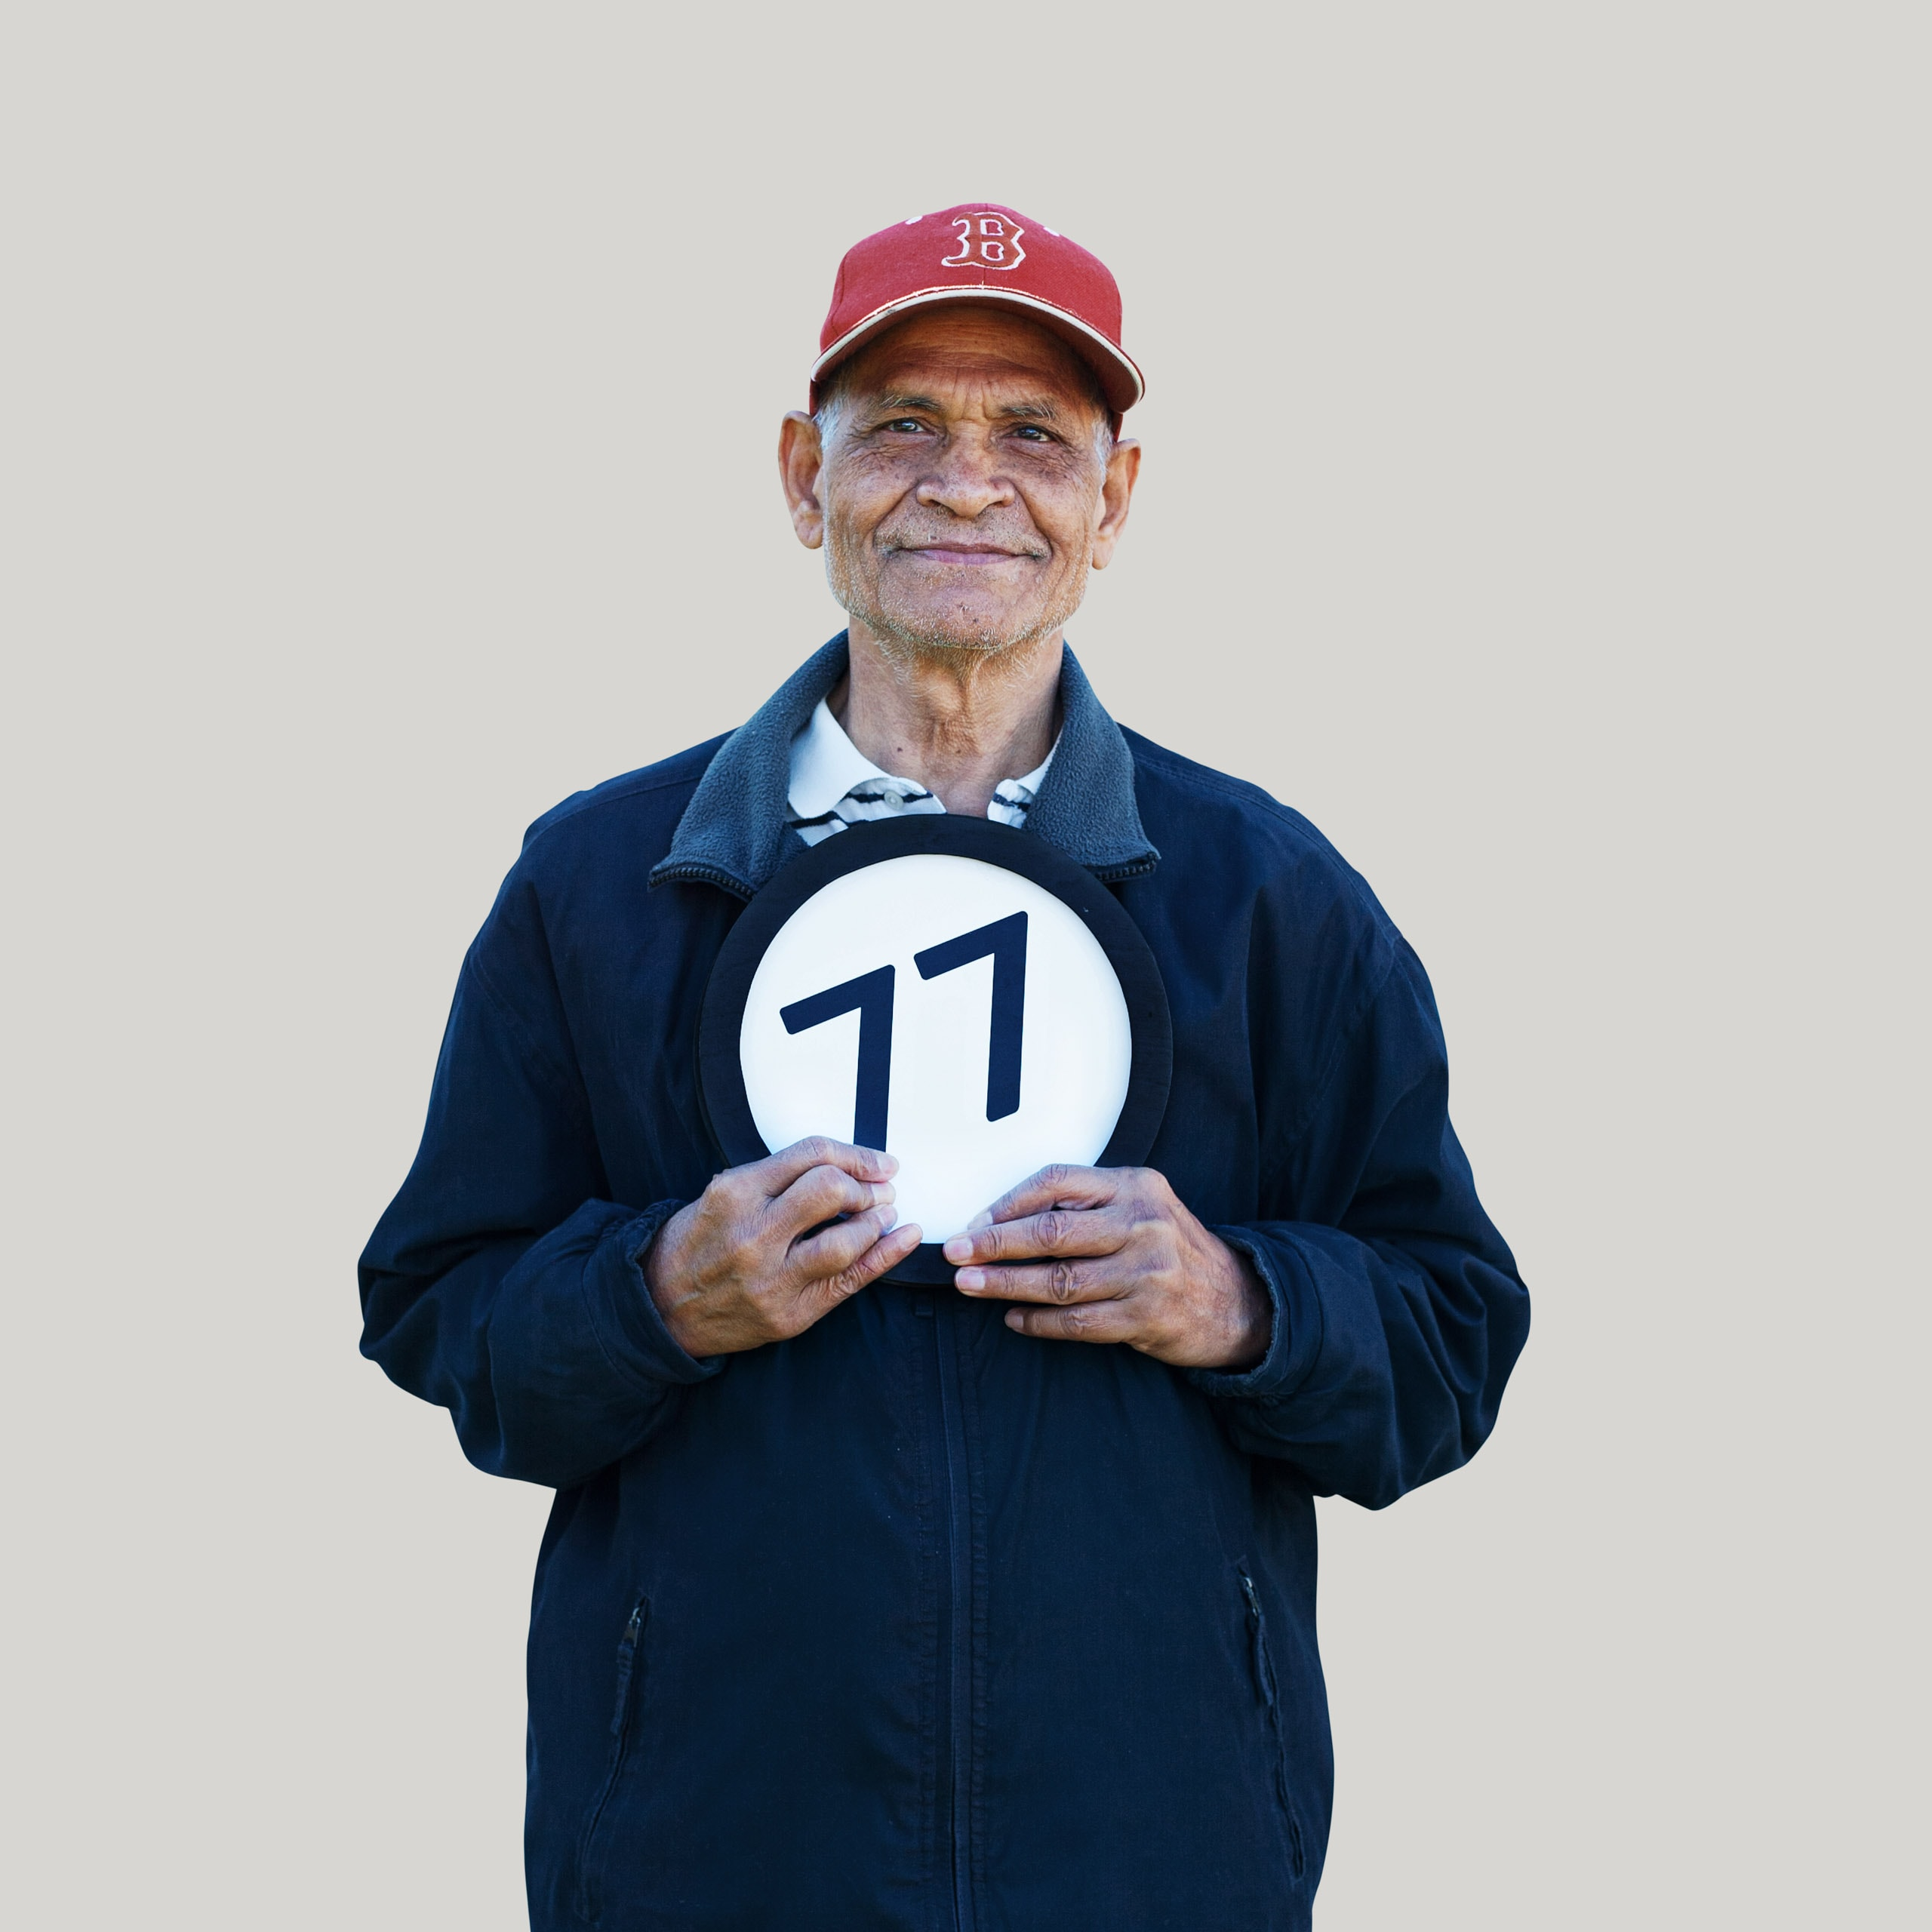 77 year old man wears a baseball cap and a closed mouth smile. He looks directly into the lens  while holding to his chesy a token with the number 77 on it. This digital image is part of the 1 to Infinity portrait photography series by Danny Goldfield.